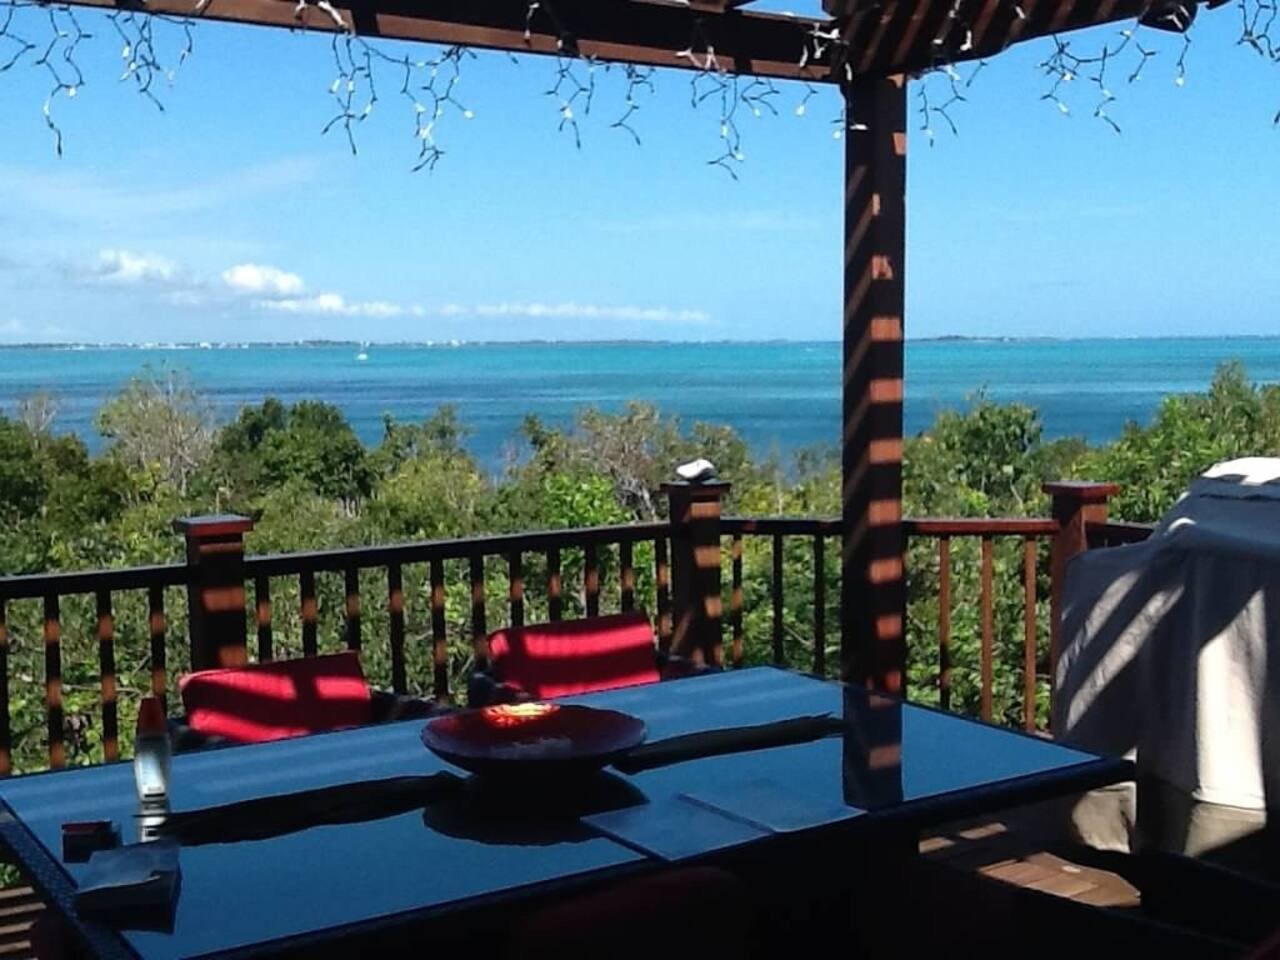 Upper deck outside dining with view of the Sea of Abaco